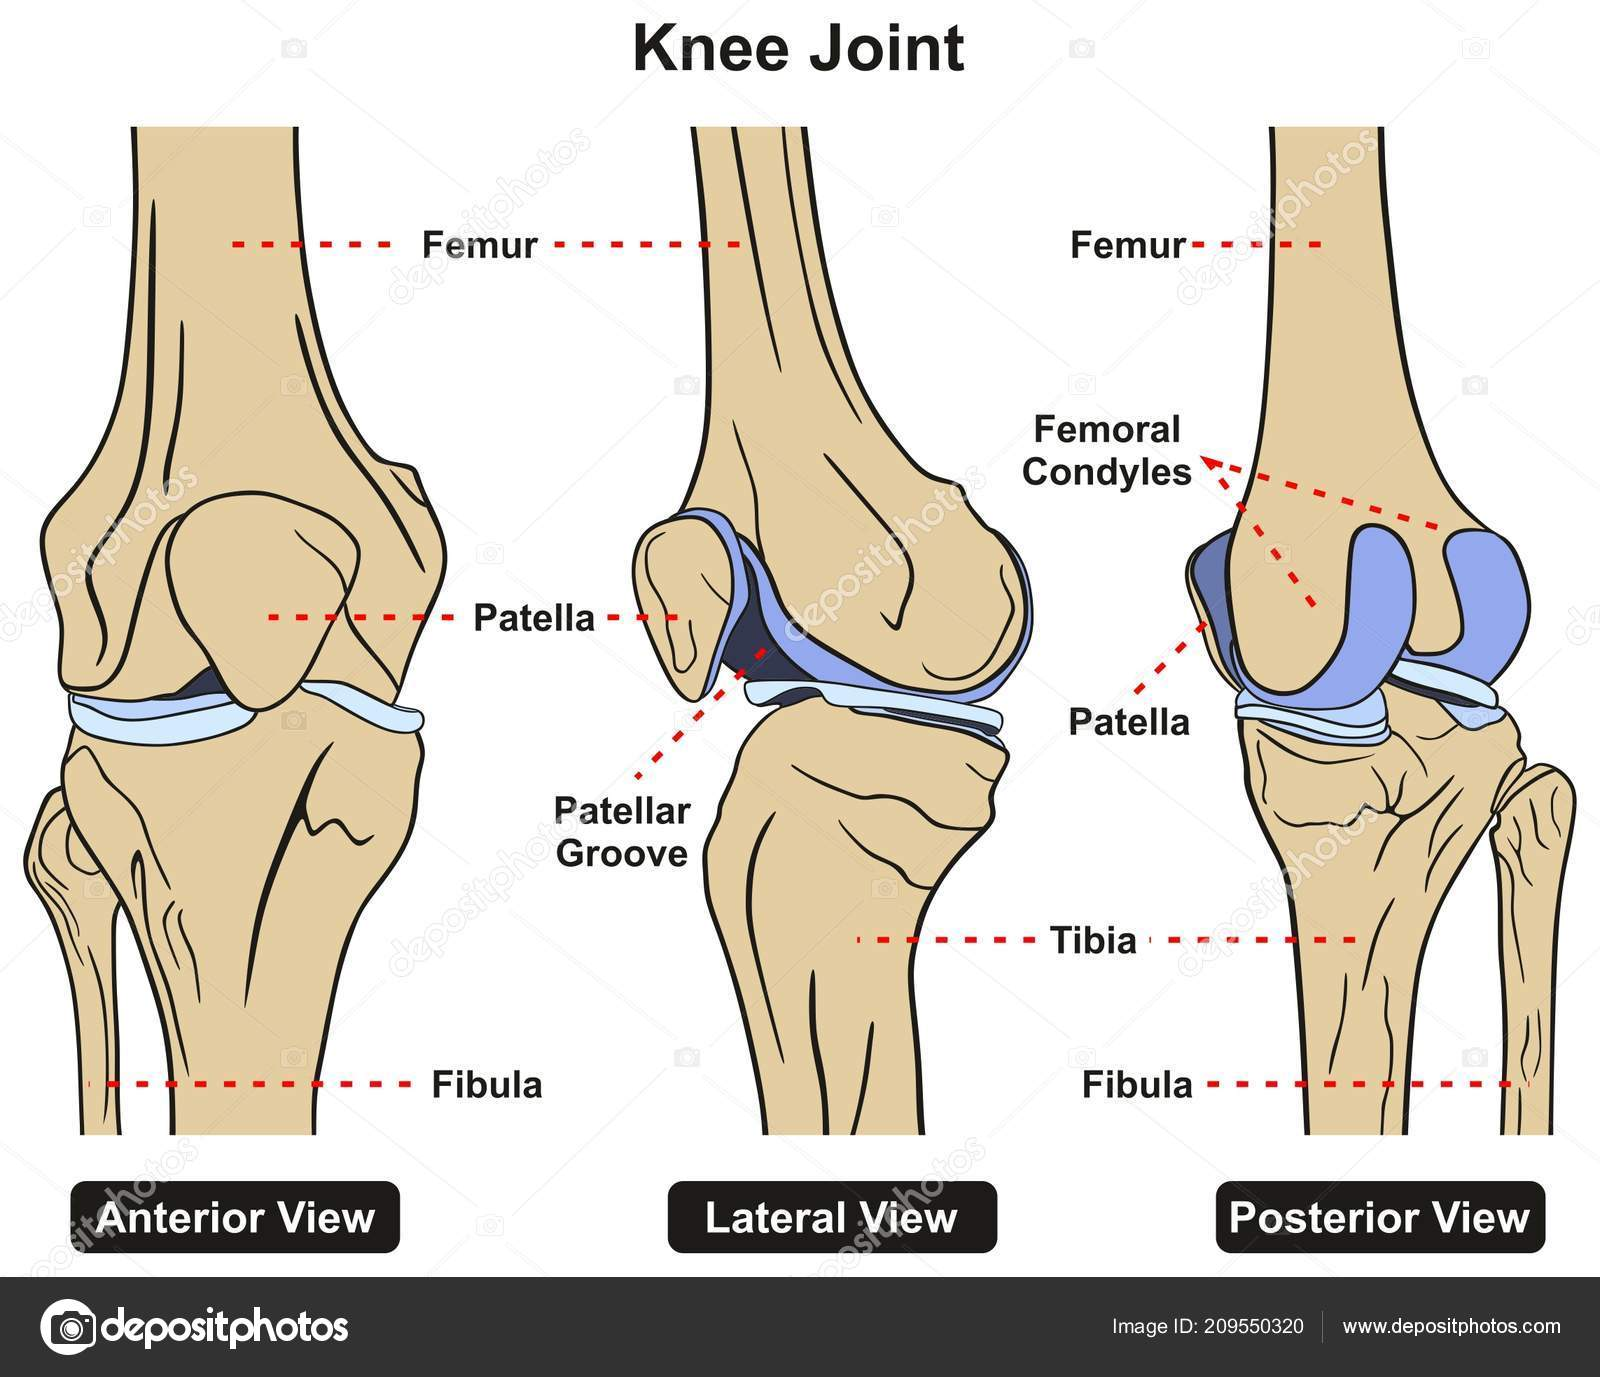 Knee Joint Human Body Anatomy Infographic Diagram Including Anterior ...